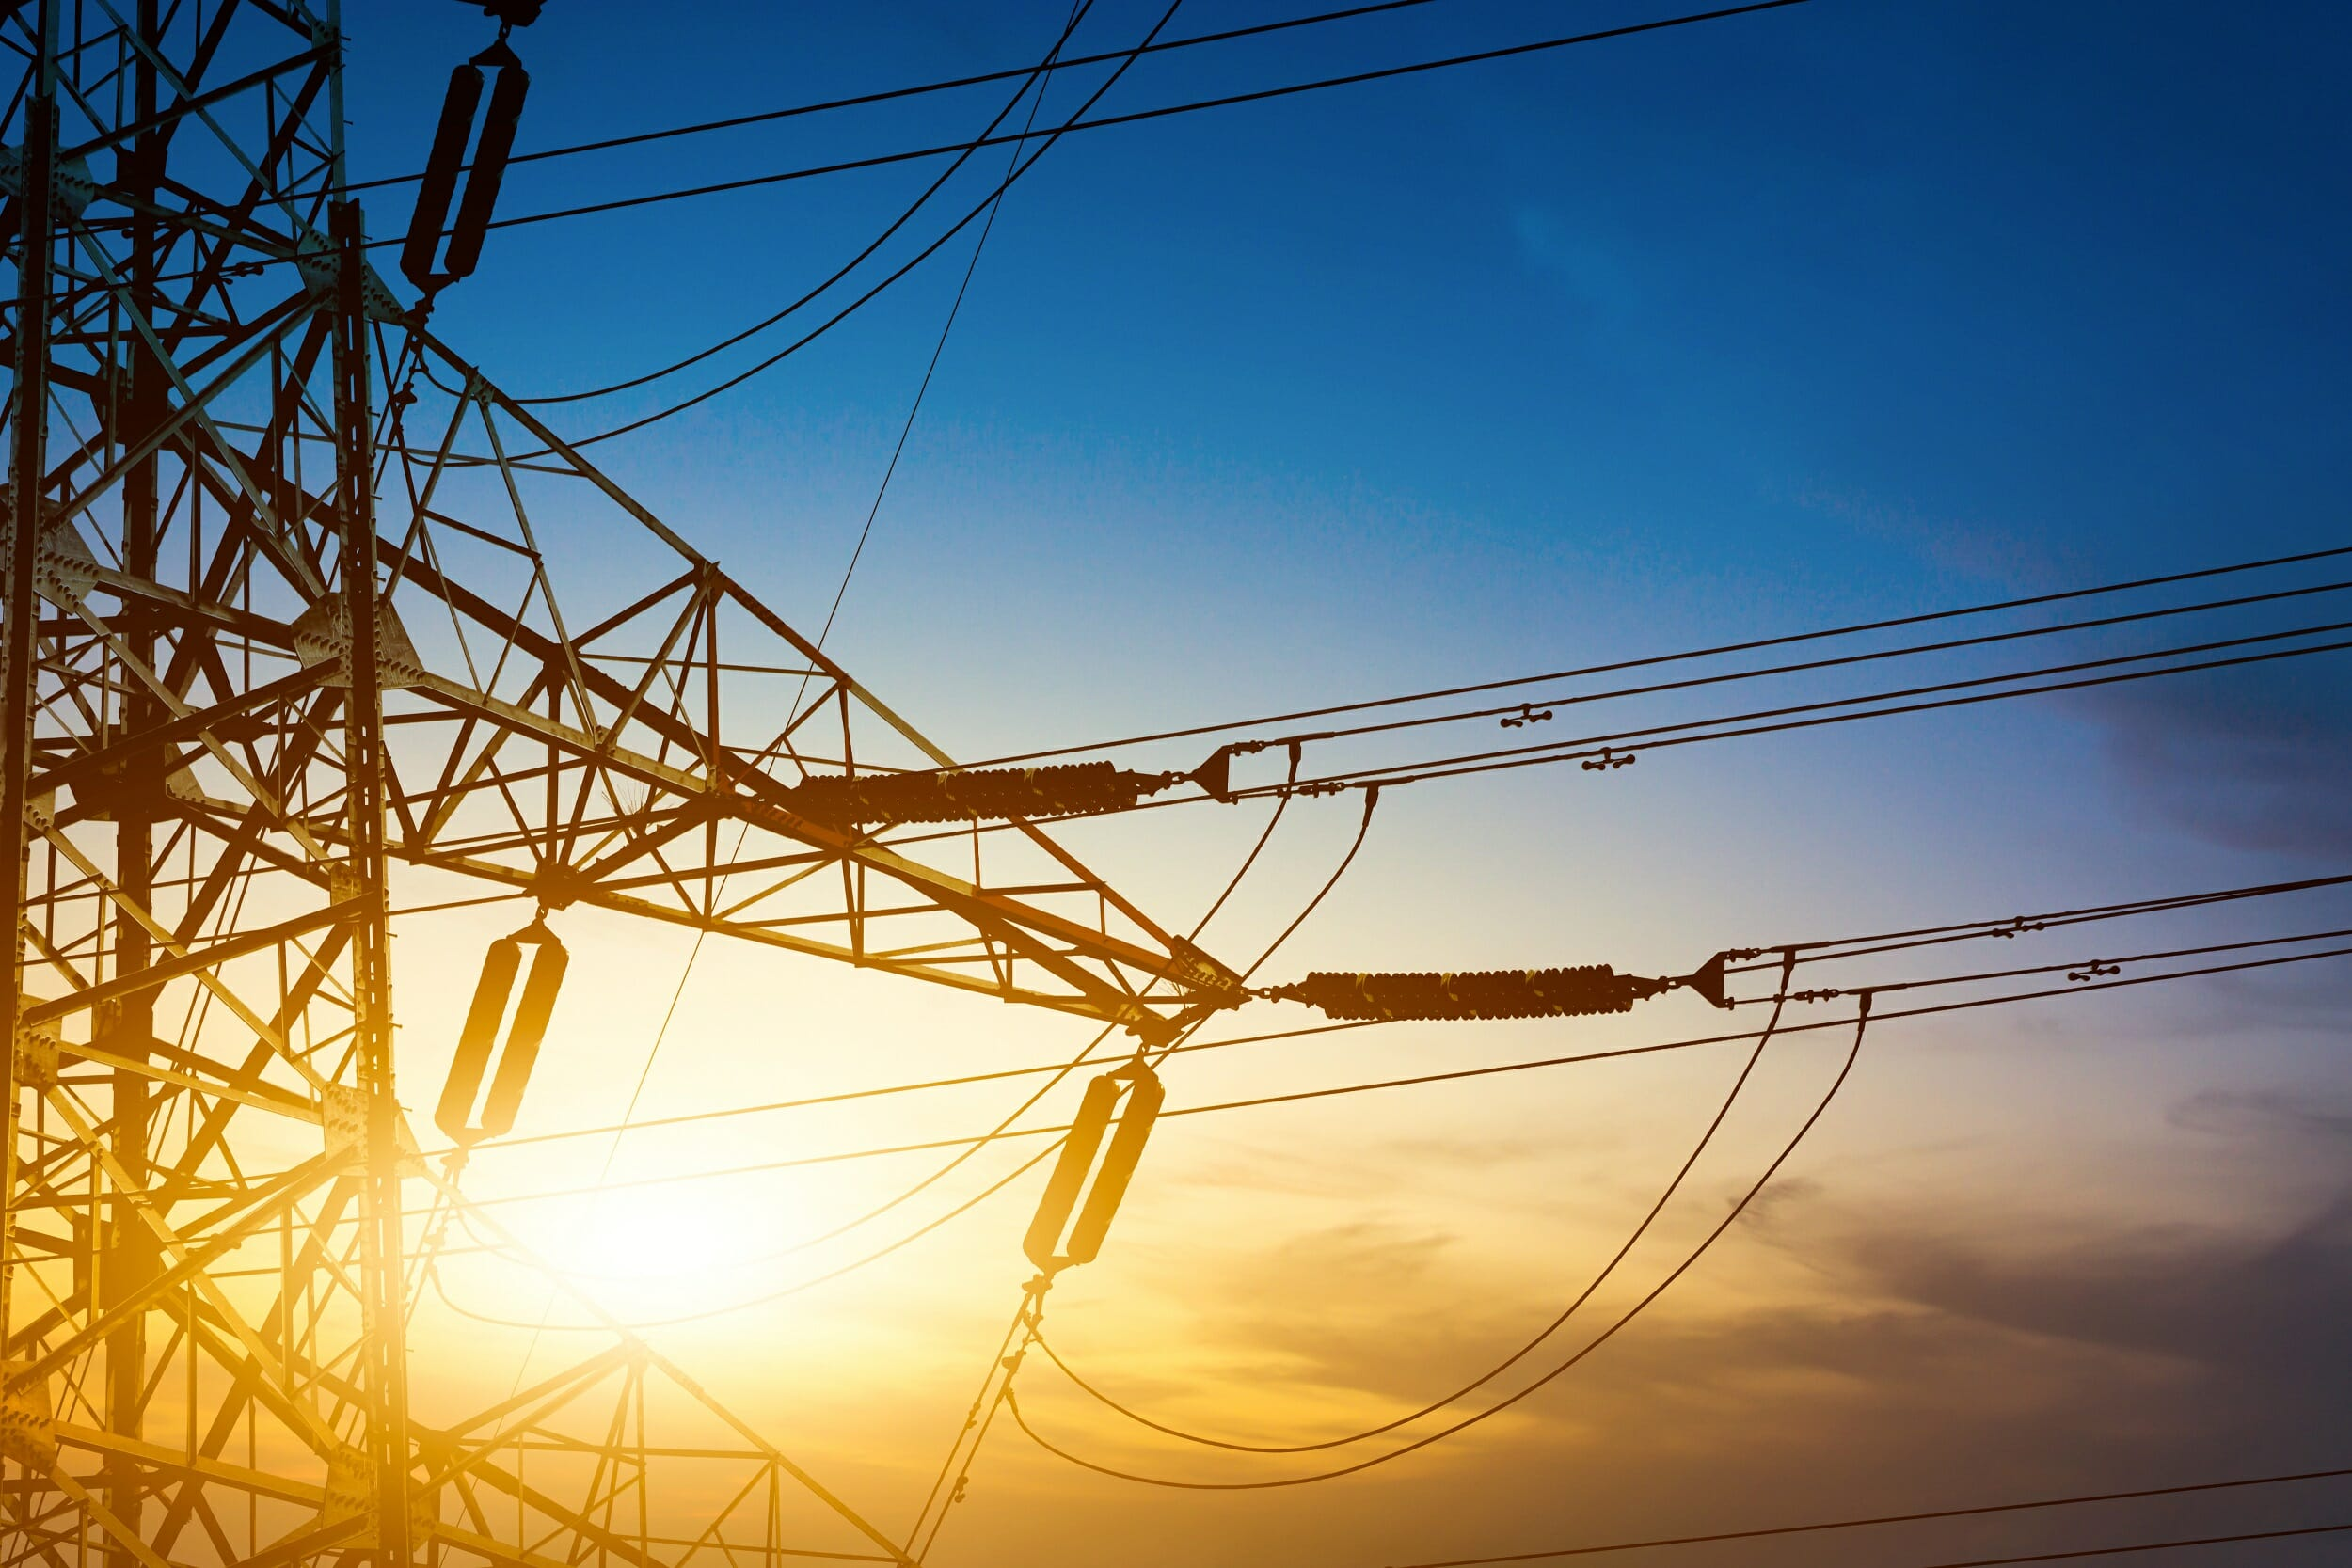 Eetc Defers Receiving Bids For Power Interconnection Project With Saudi Arabia Daily News Egypt